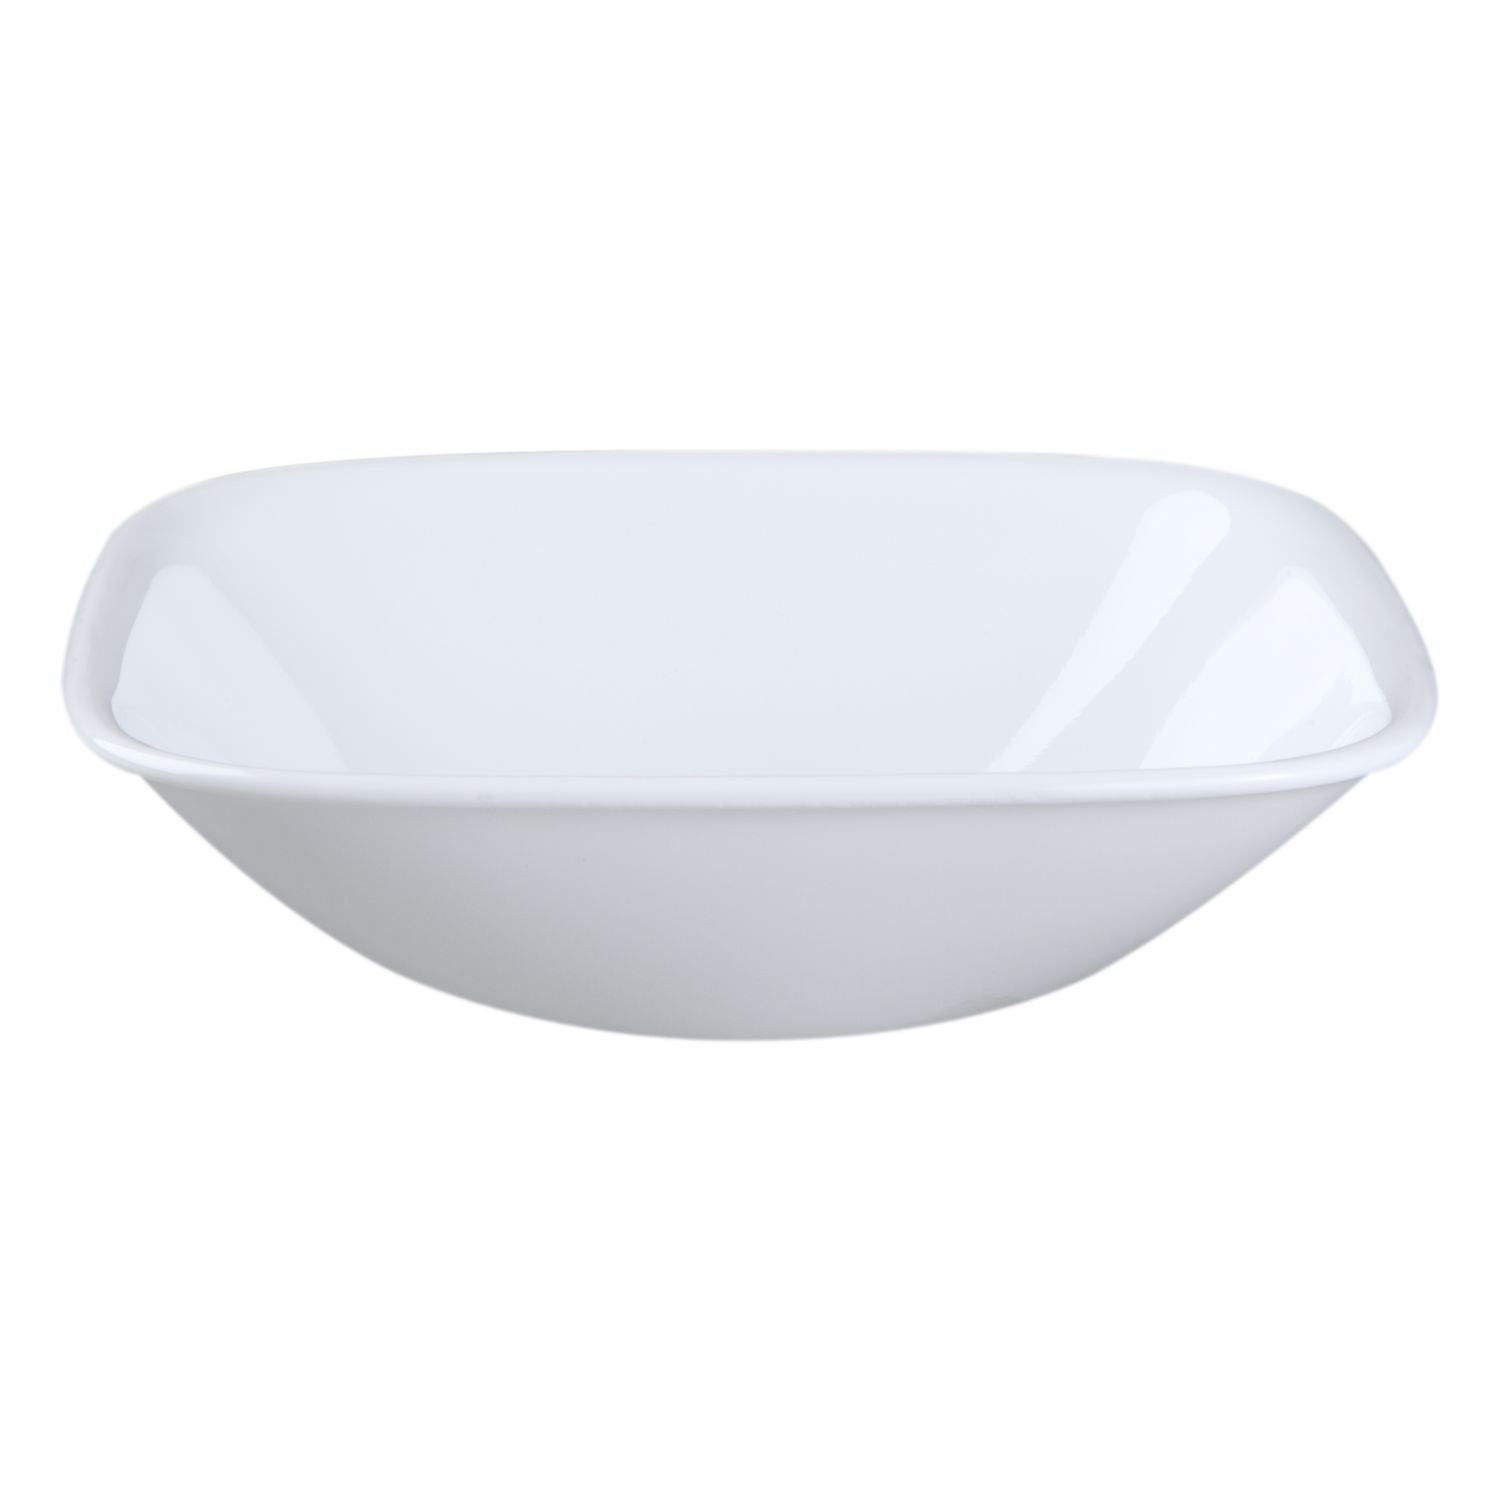 Corelle Square Pure White 10 Ounce Soup/Cereal Bowl (Set of 6)